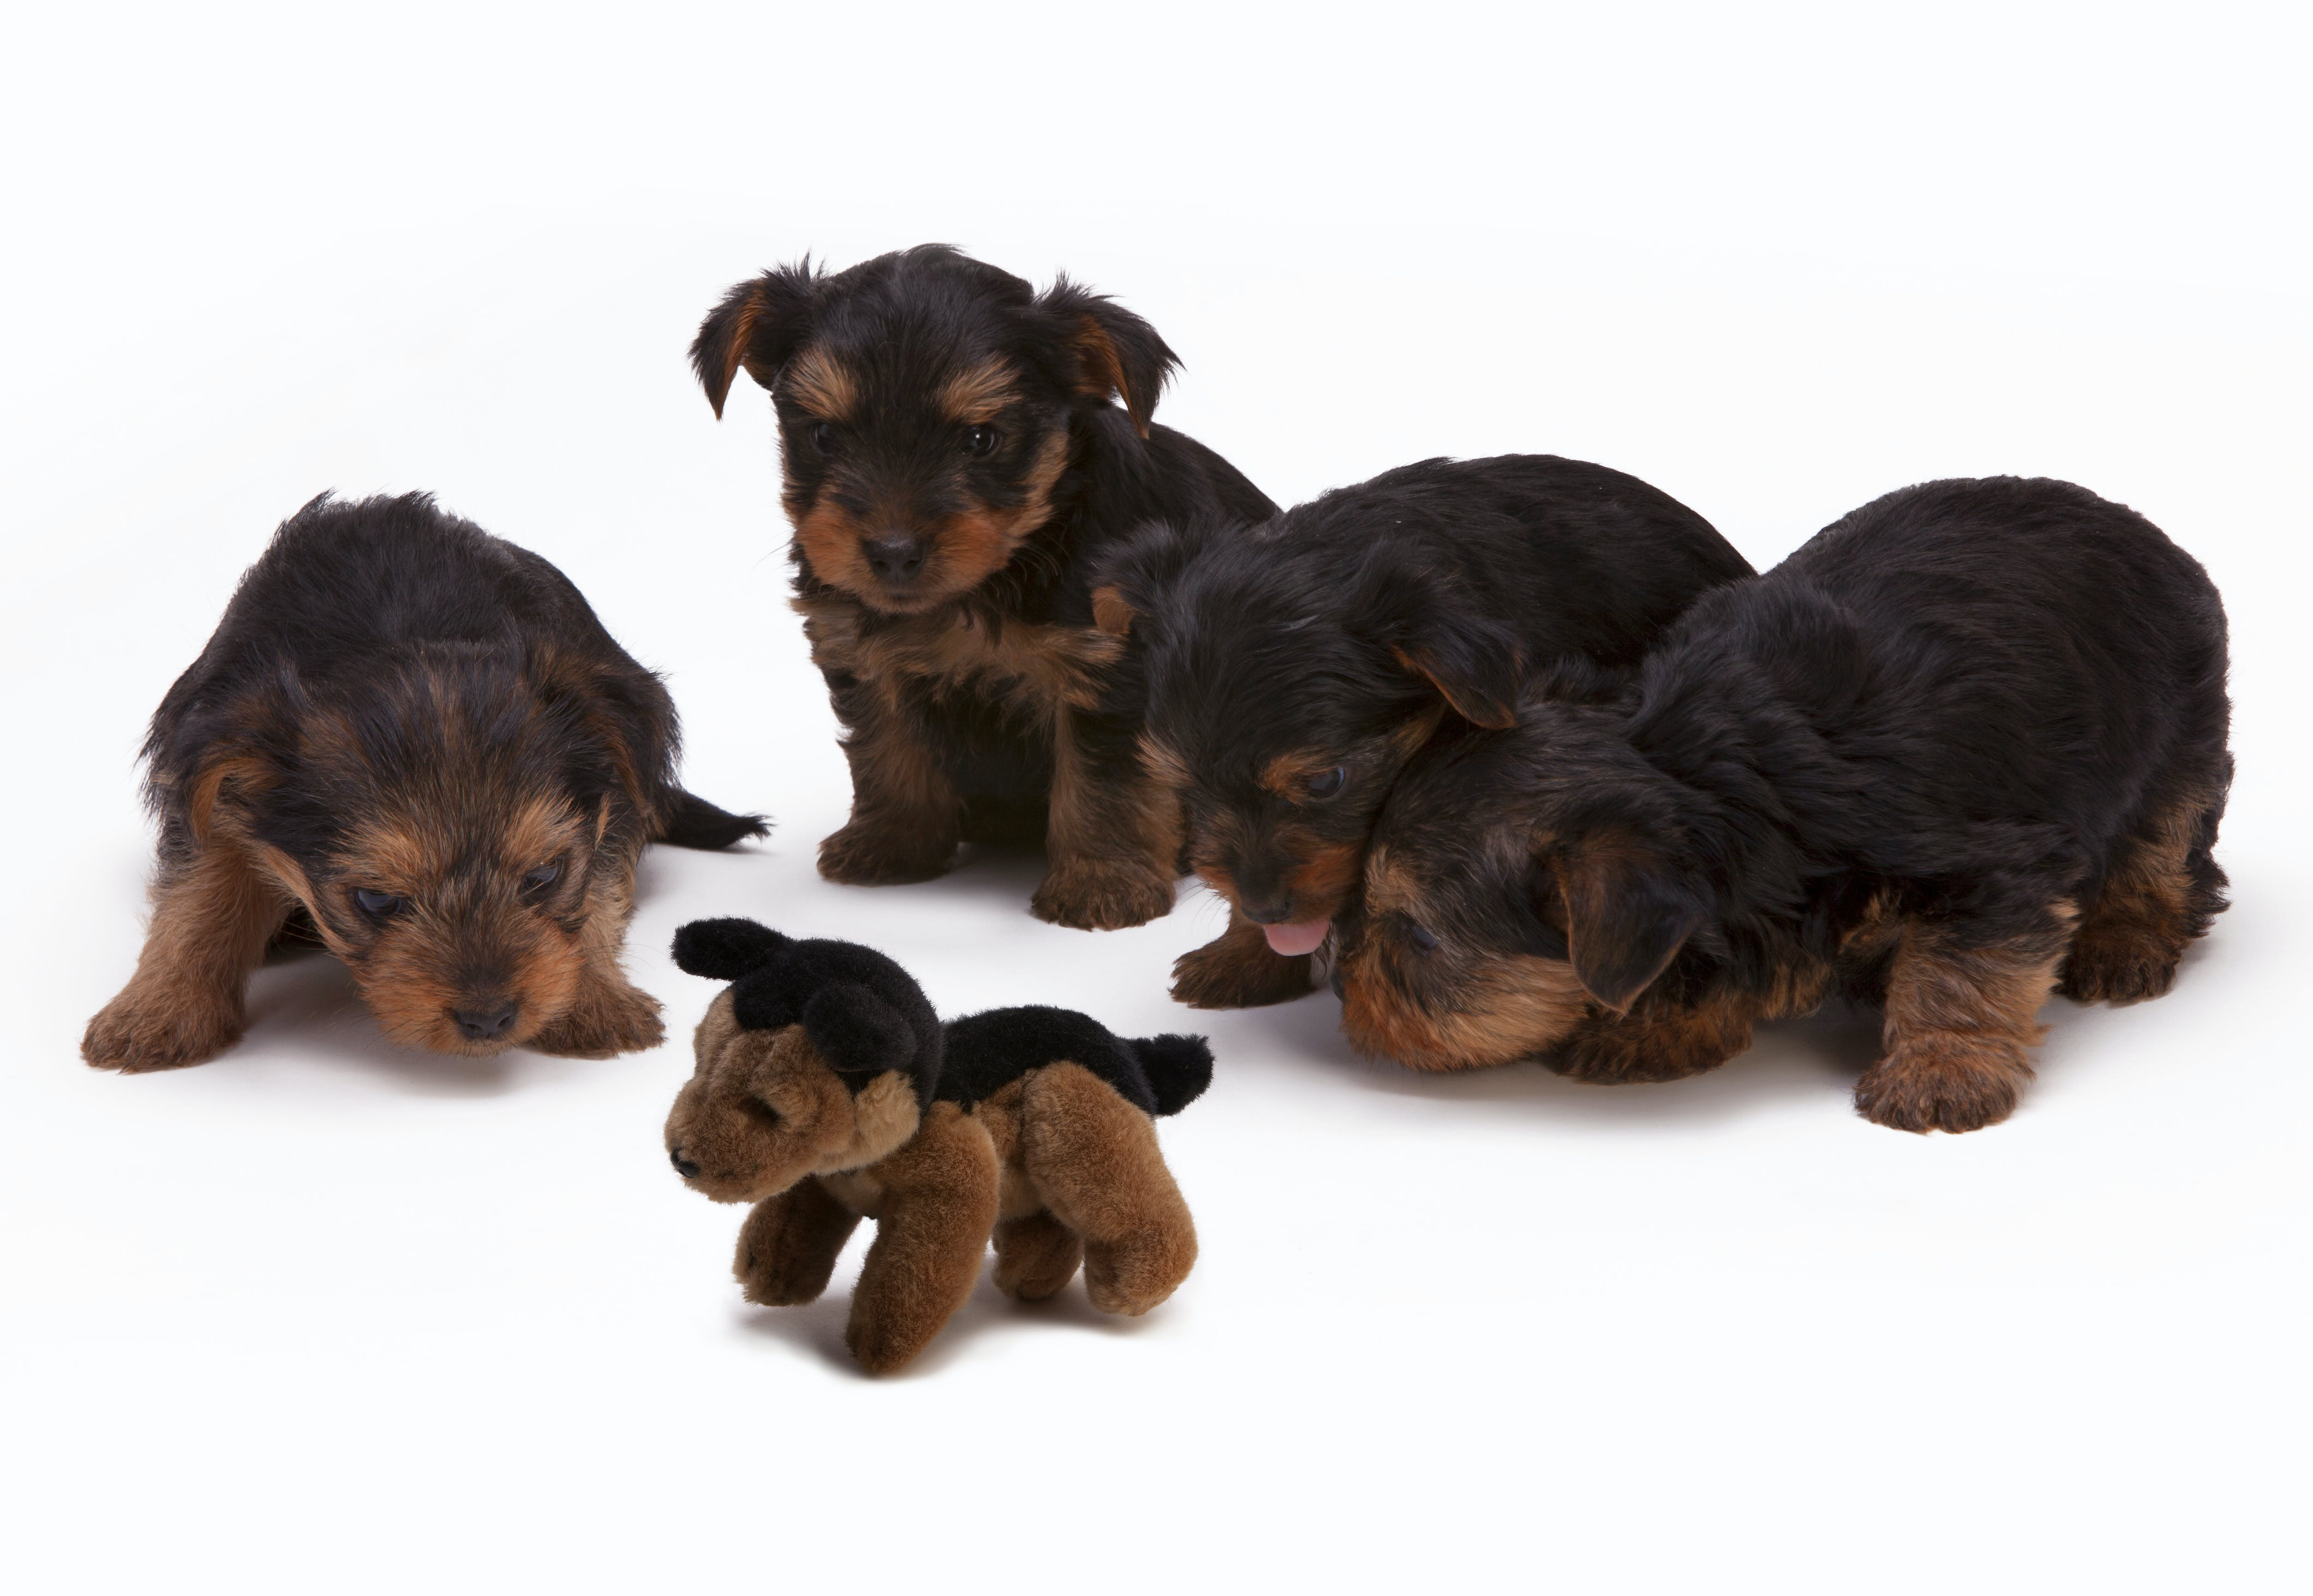 Black and Brown Long Haired Puppies